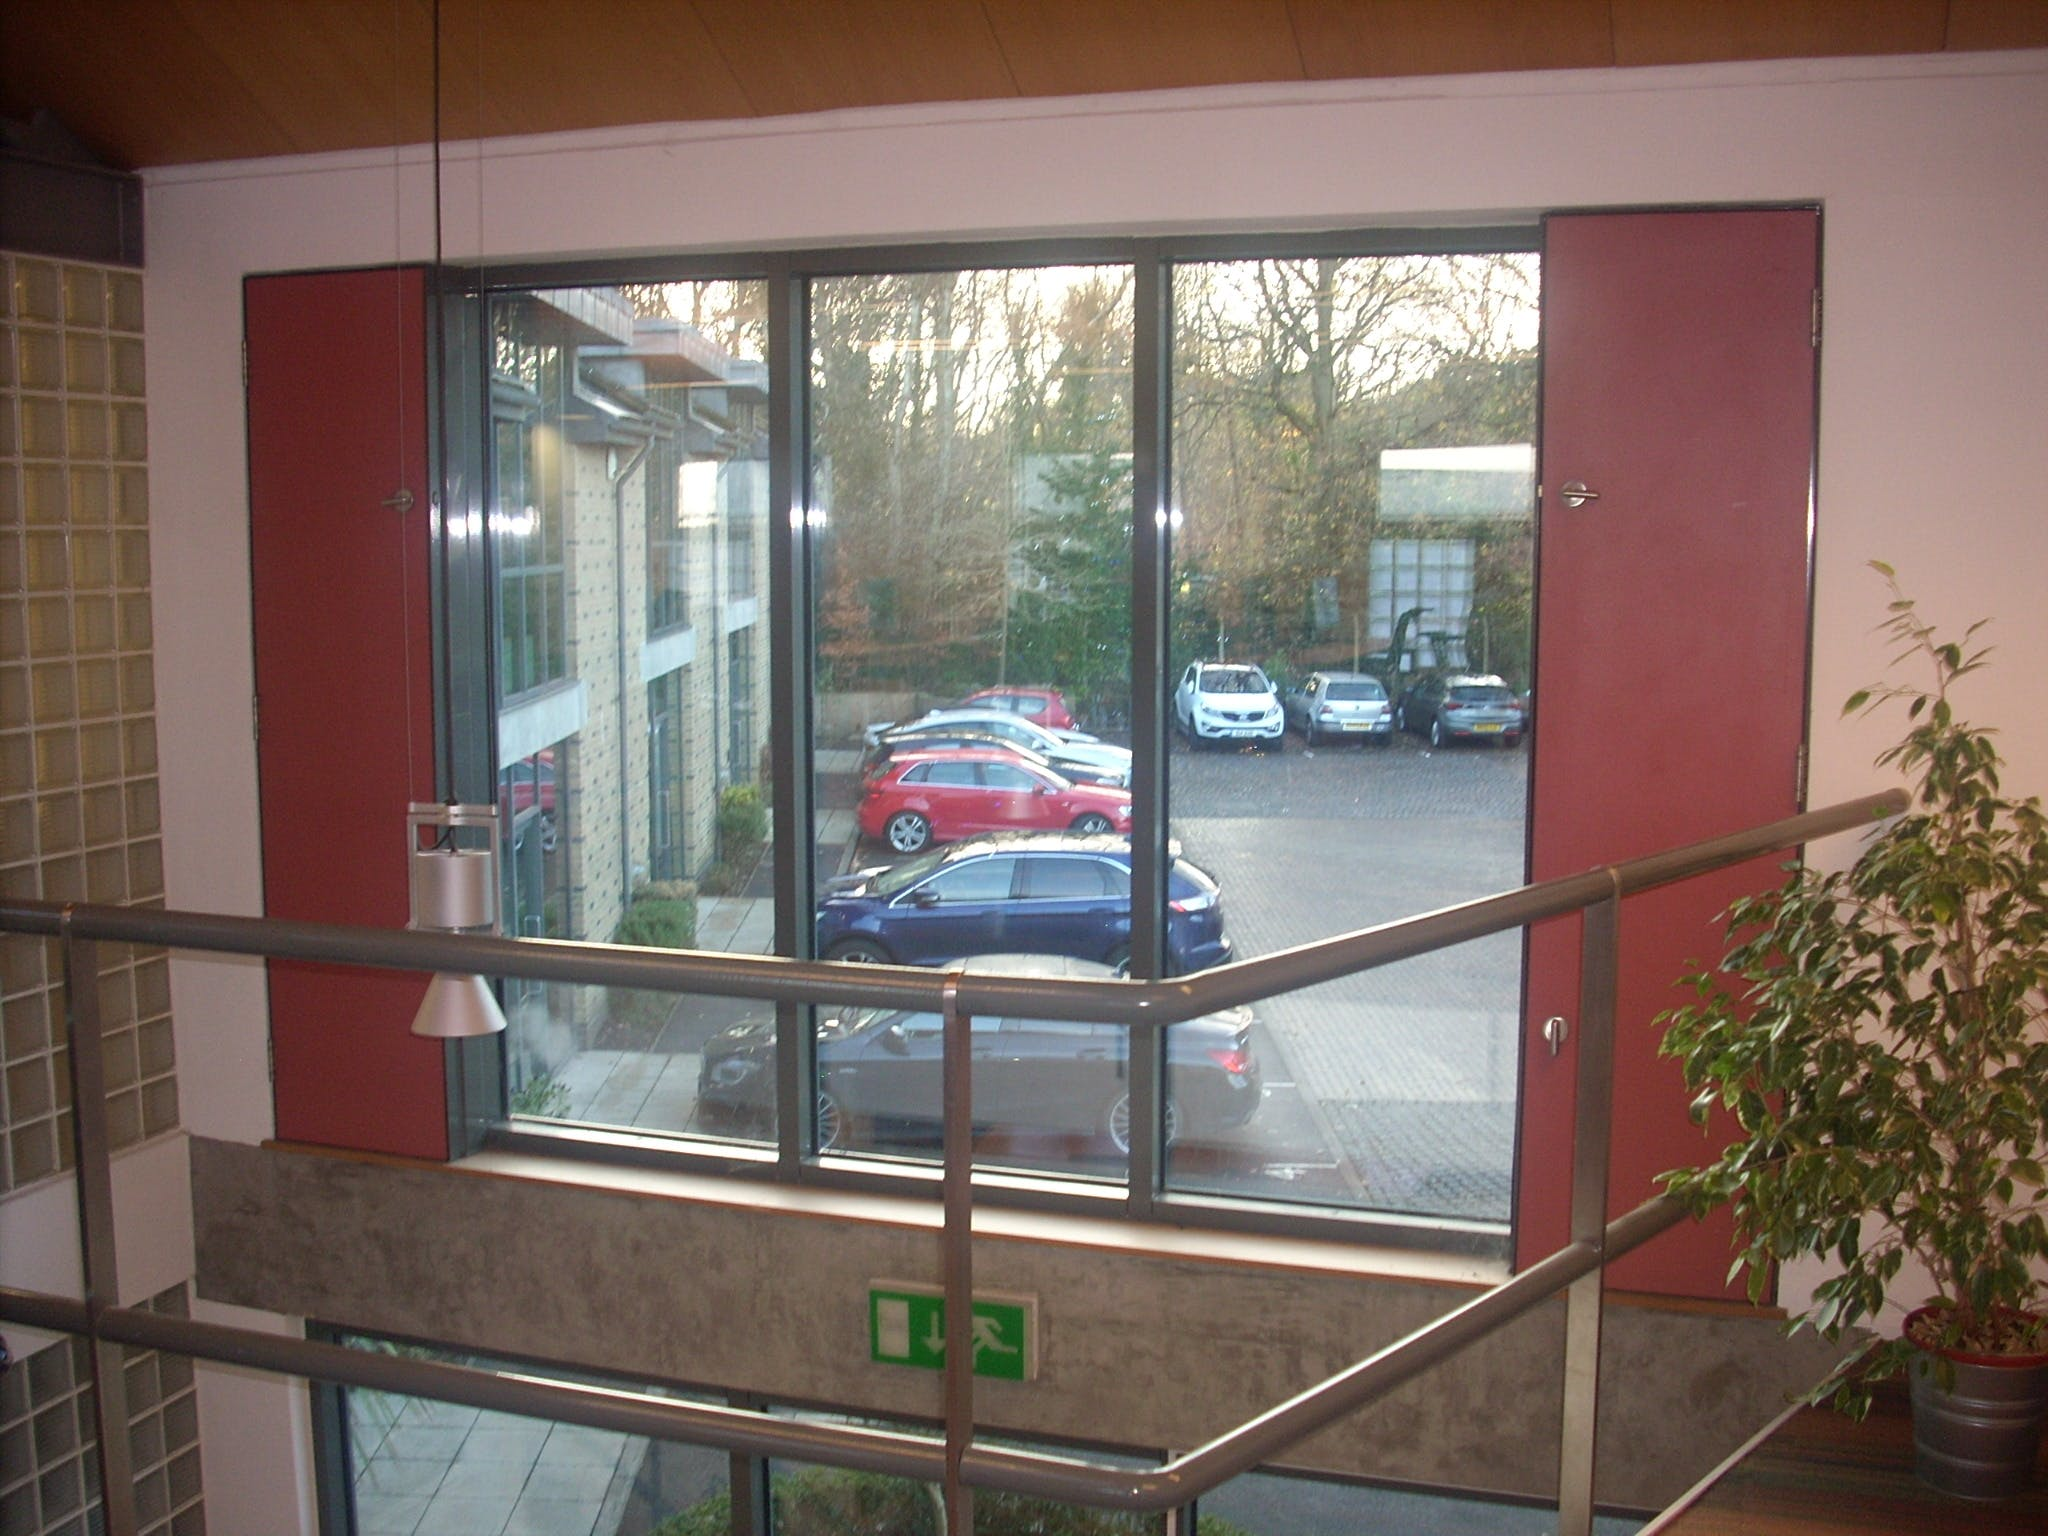 Units 3 & 4, The Courtyard, Bracknell, Offices To Let - DSCN5701.JPG